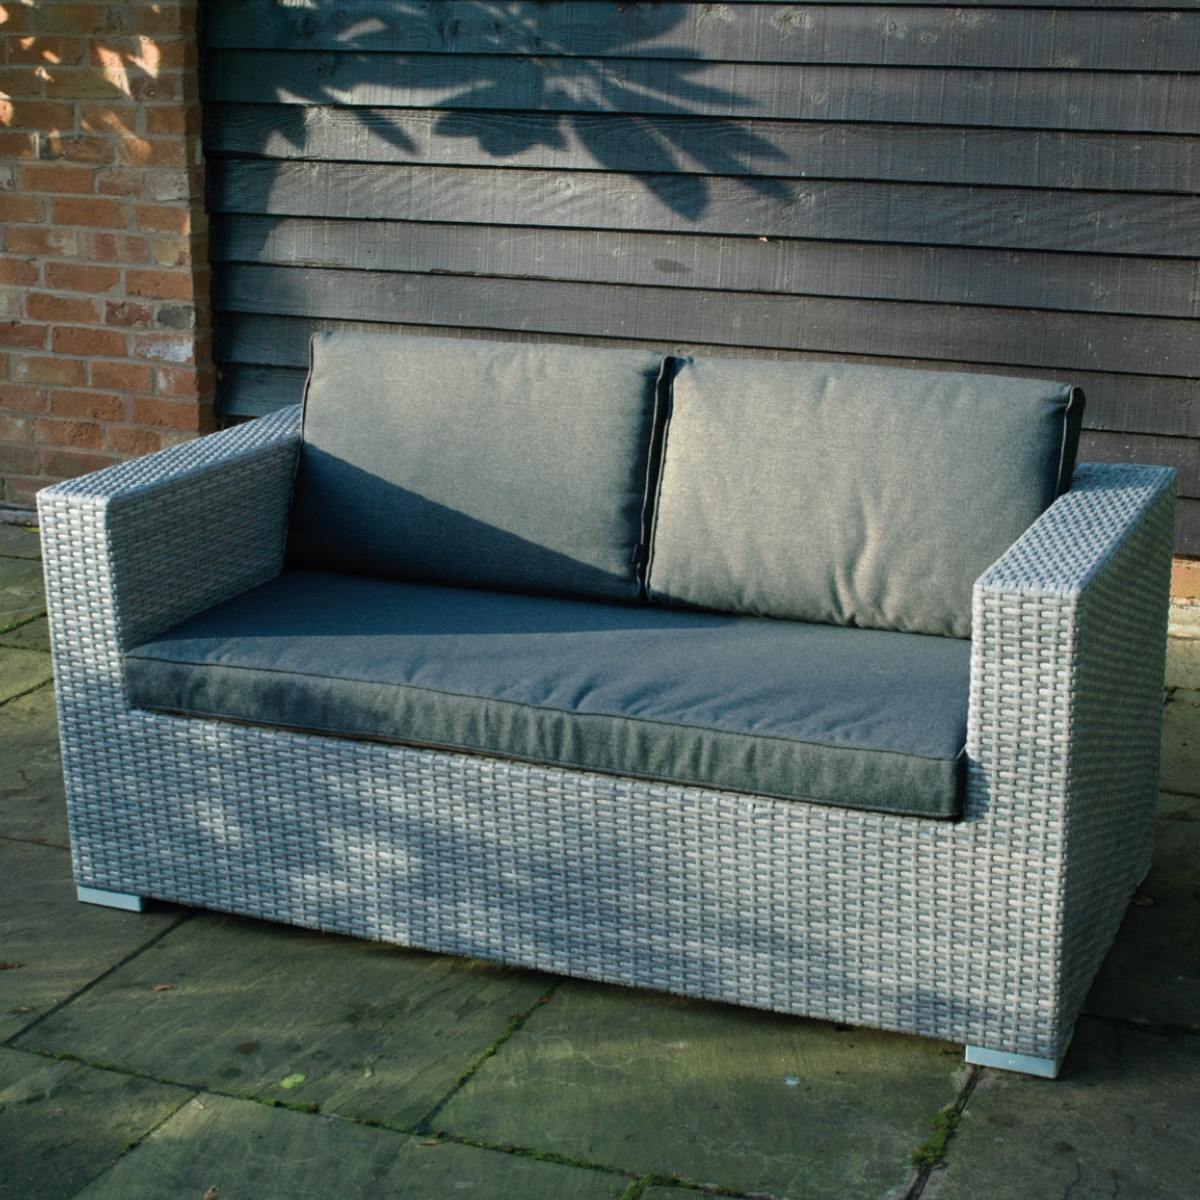 Cologne Rattan 2 Seater Sofa | Woodberry With Two Seater Sofas (View 11 of 15)